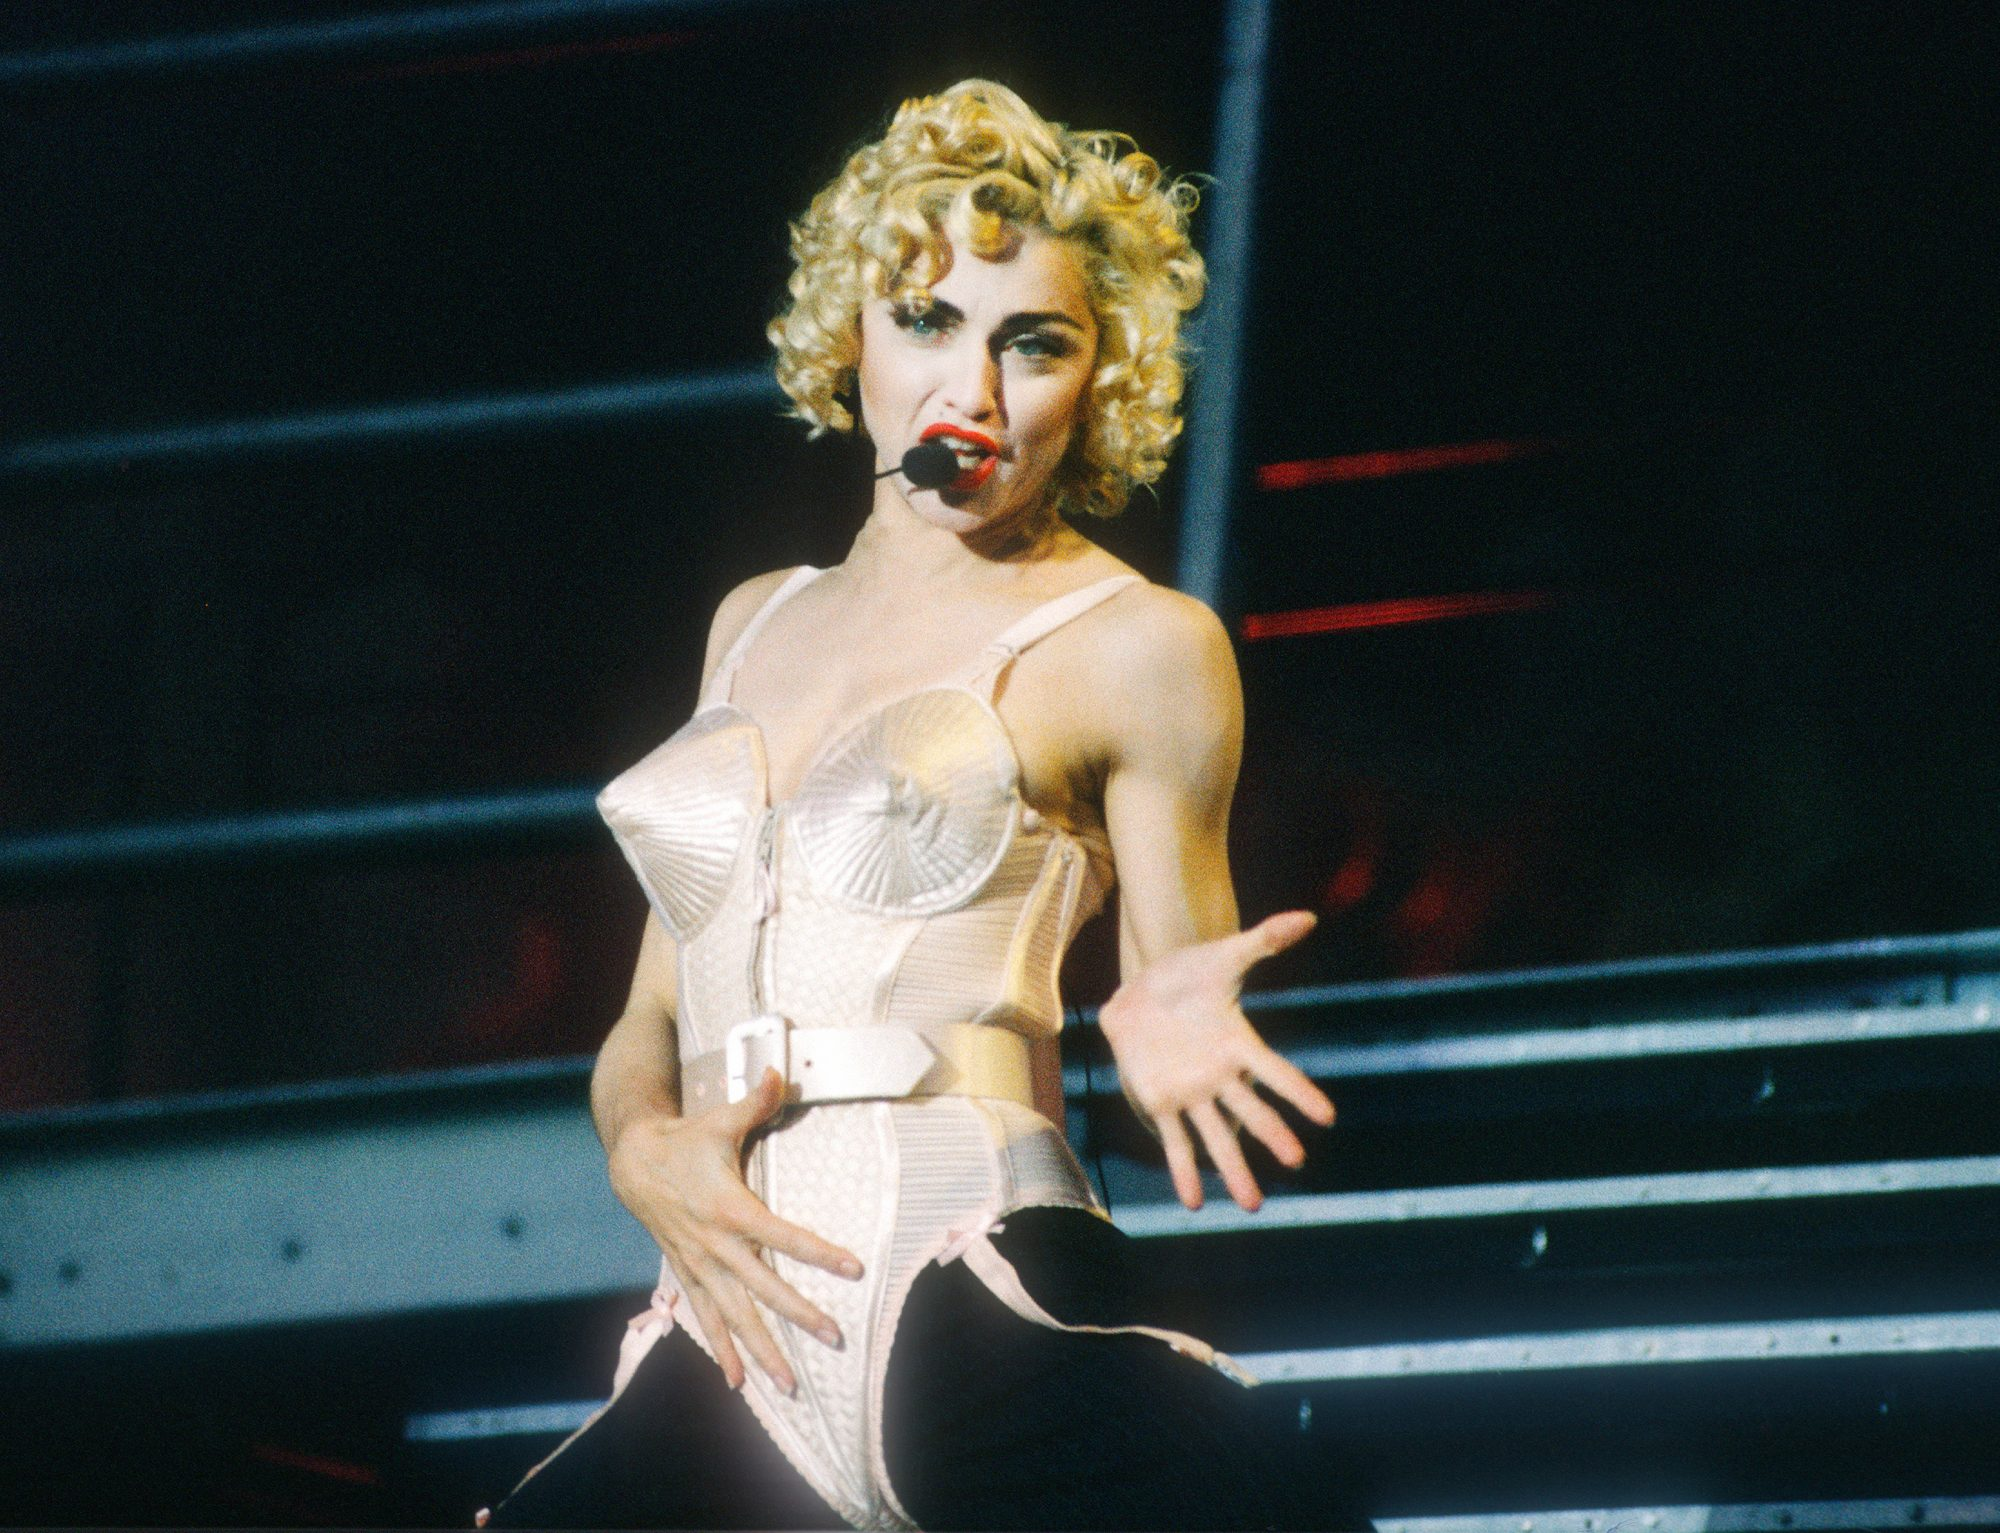 1990: Onstage during the Blonde Ambition Tour